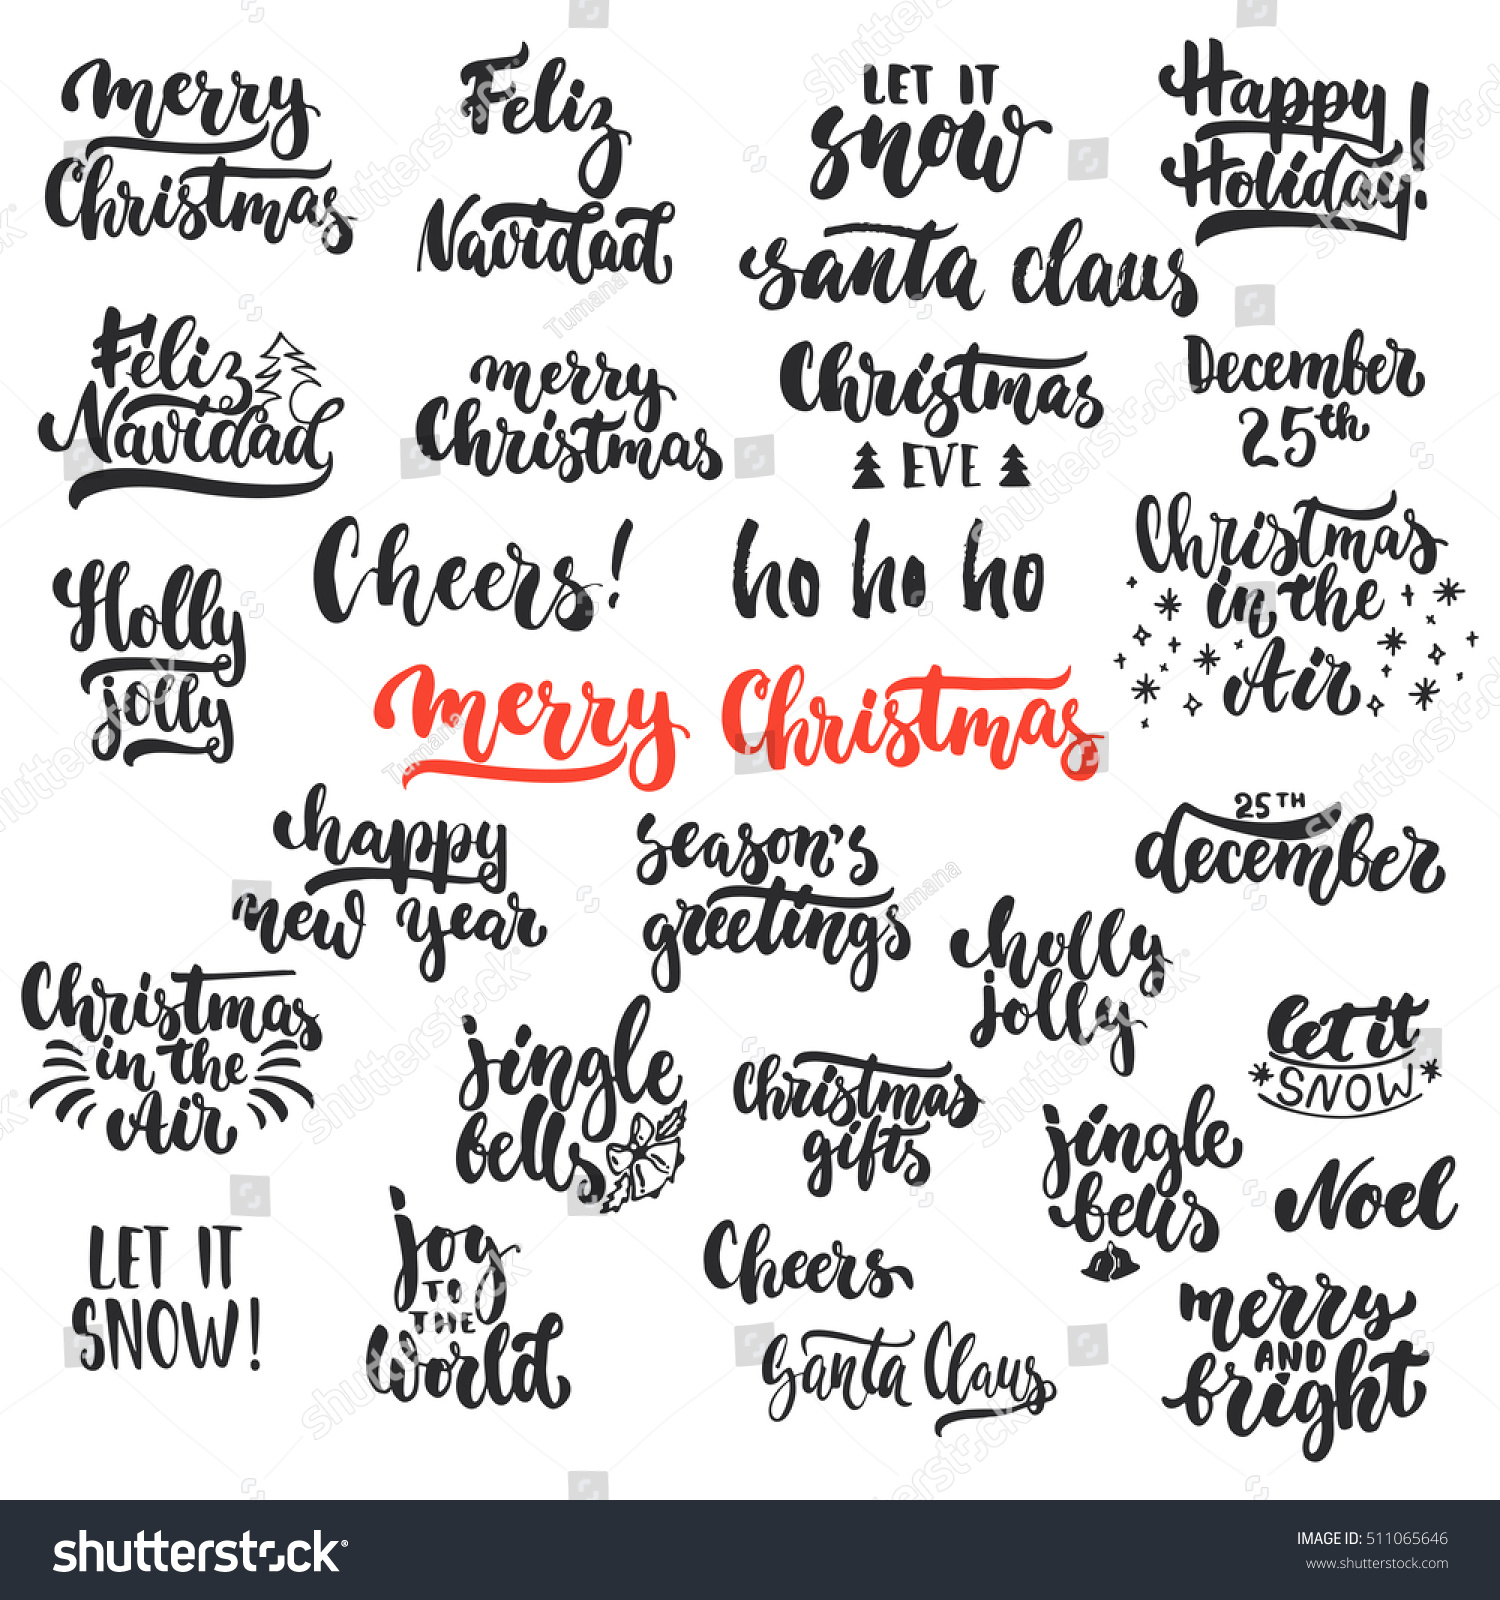 Lettering Christmas New Year Holiday Calligraphy Stock Vector ...